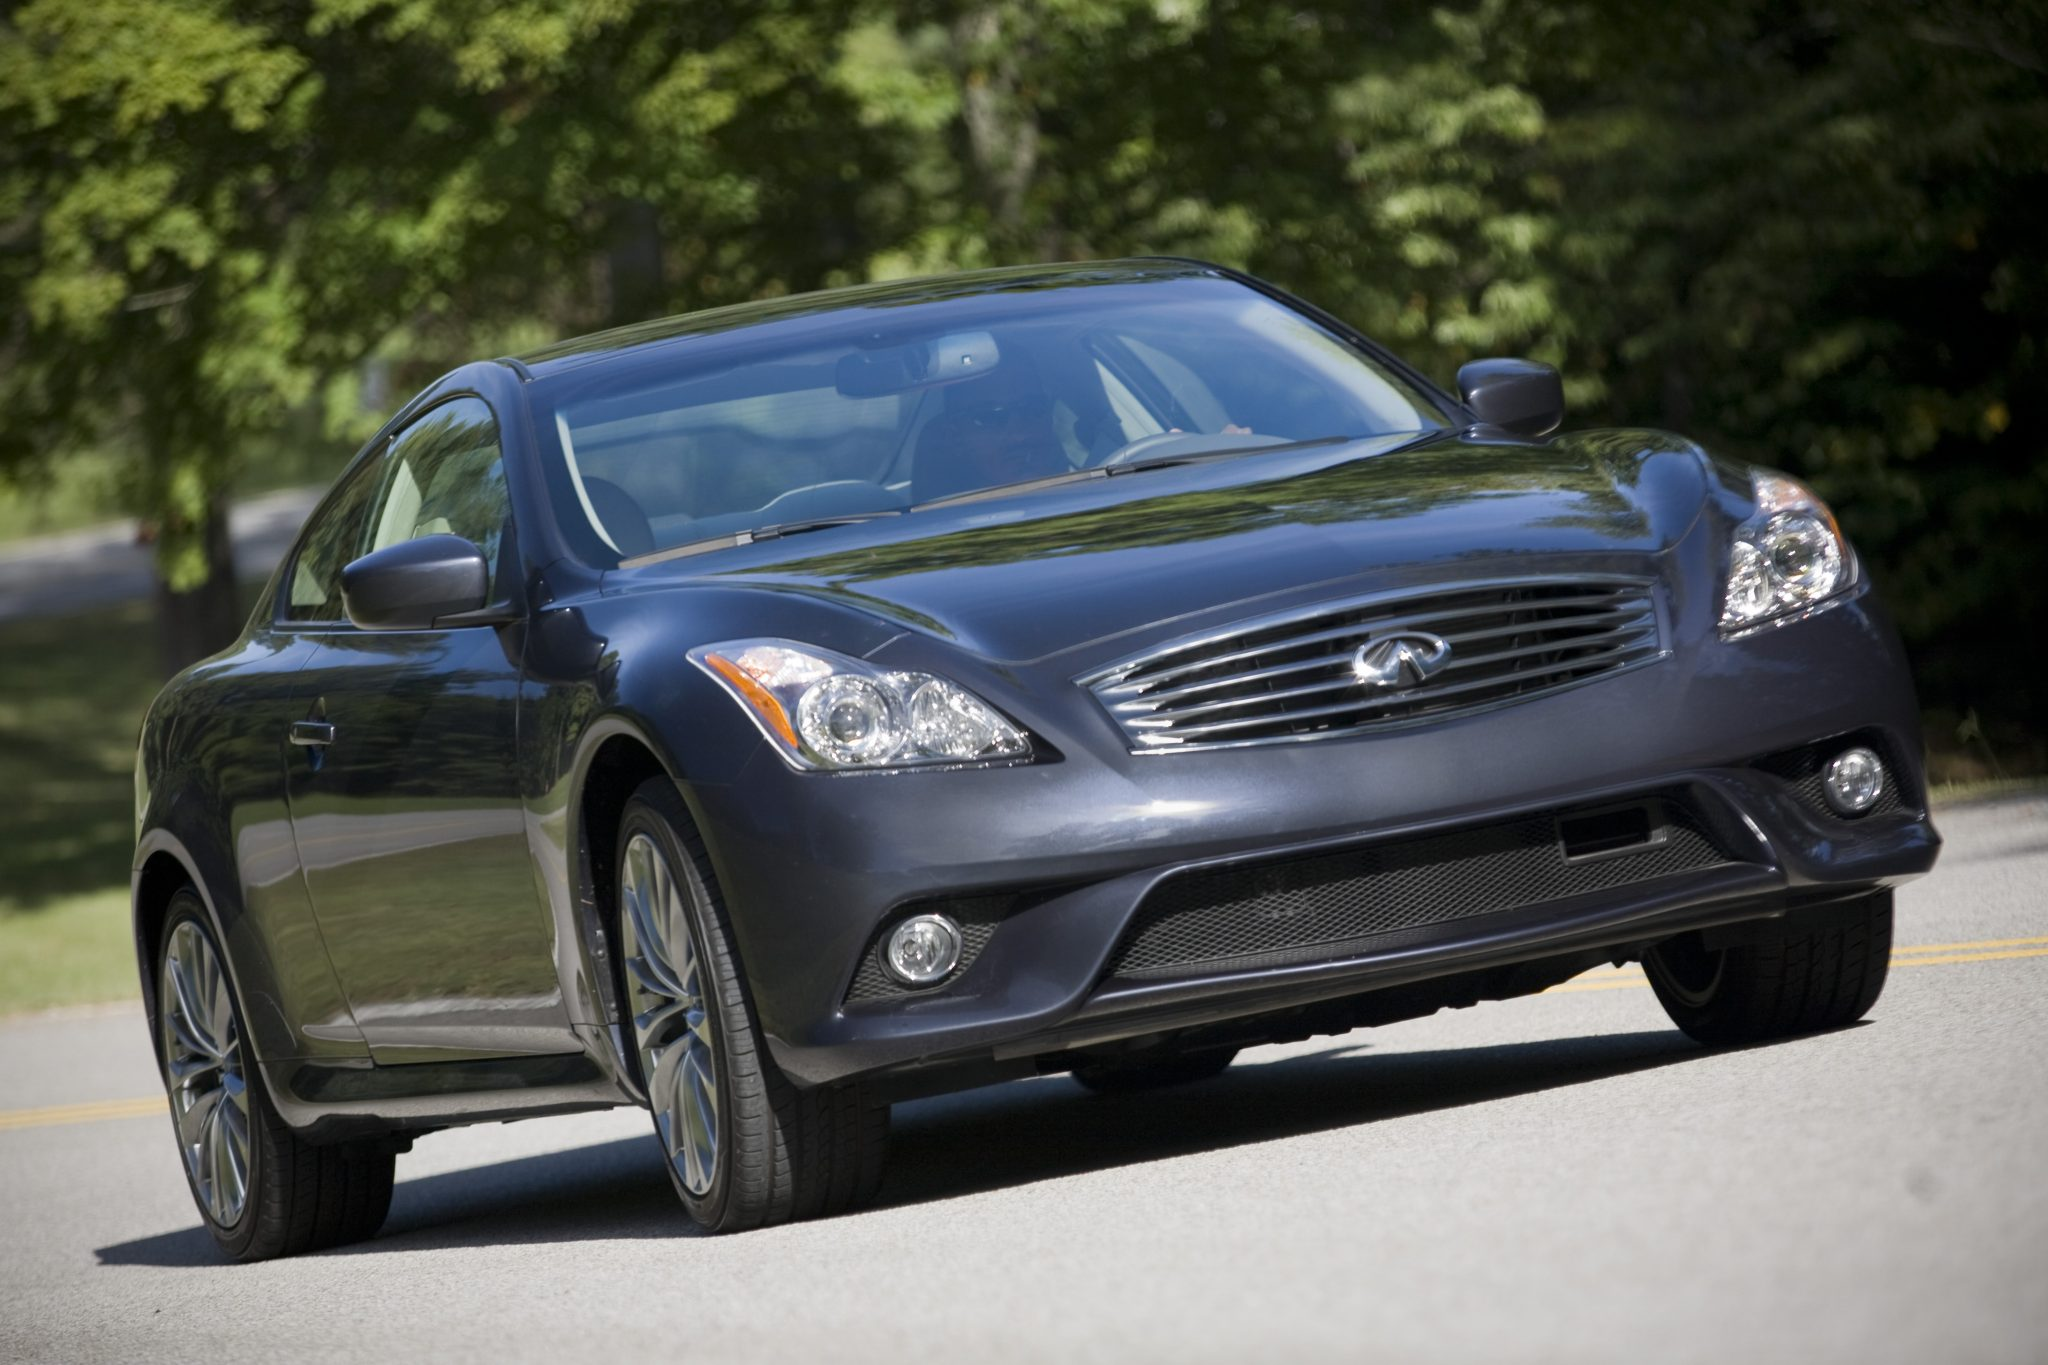 2013 Infiniti G37 Coupe overview